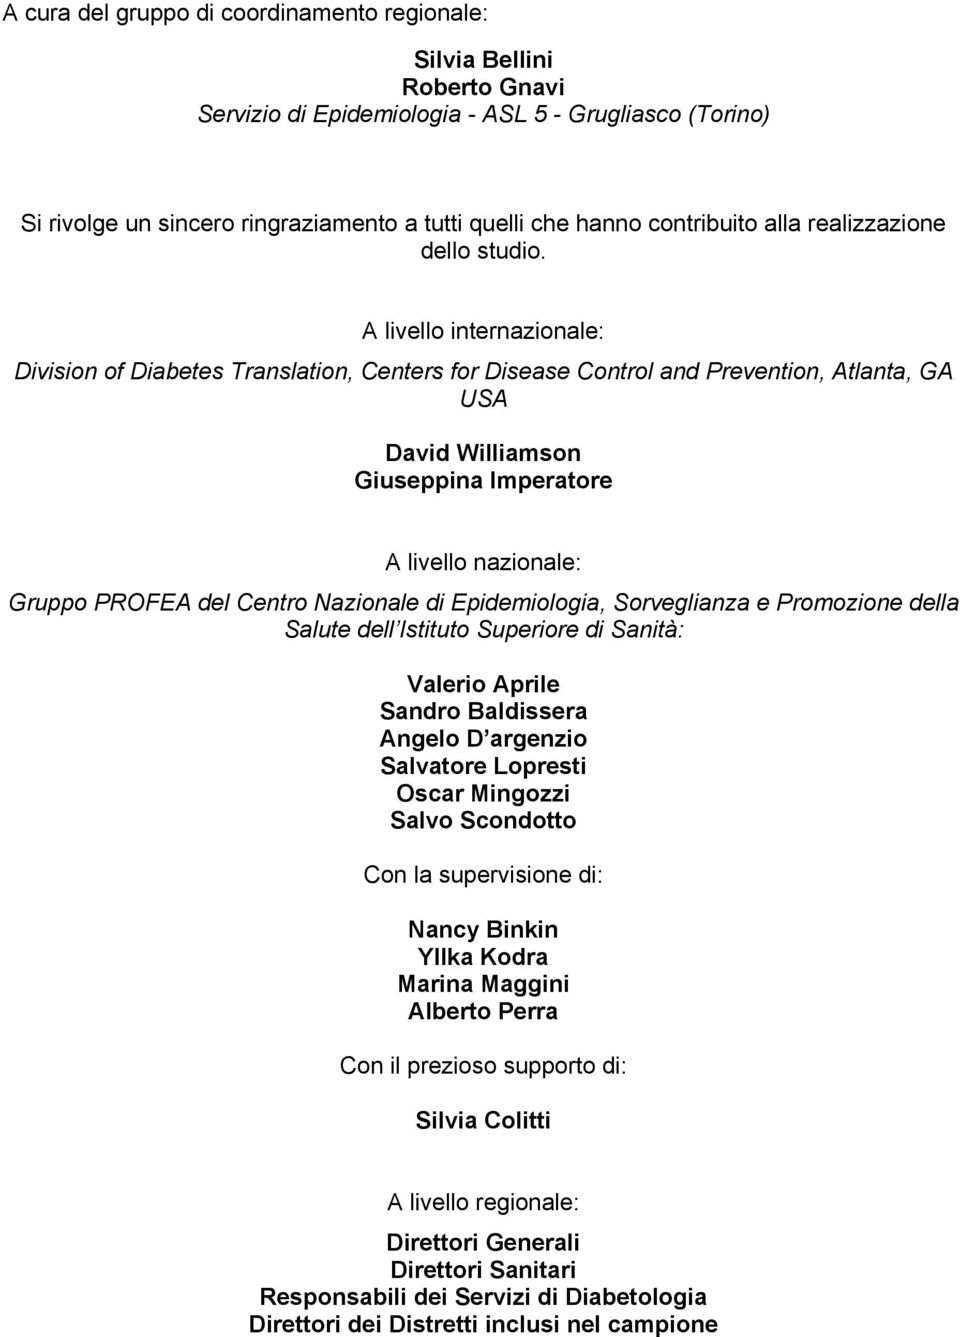 A livello internazionale: Division of Diabetes Translation, Centers for Disease Control and Prevention, Atlanta, GA USA David Williamson Giuseppina Imperatore A livello nazionale: Gruppo PROFEA del